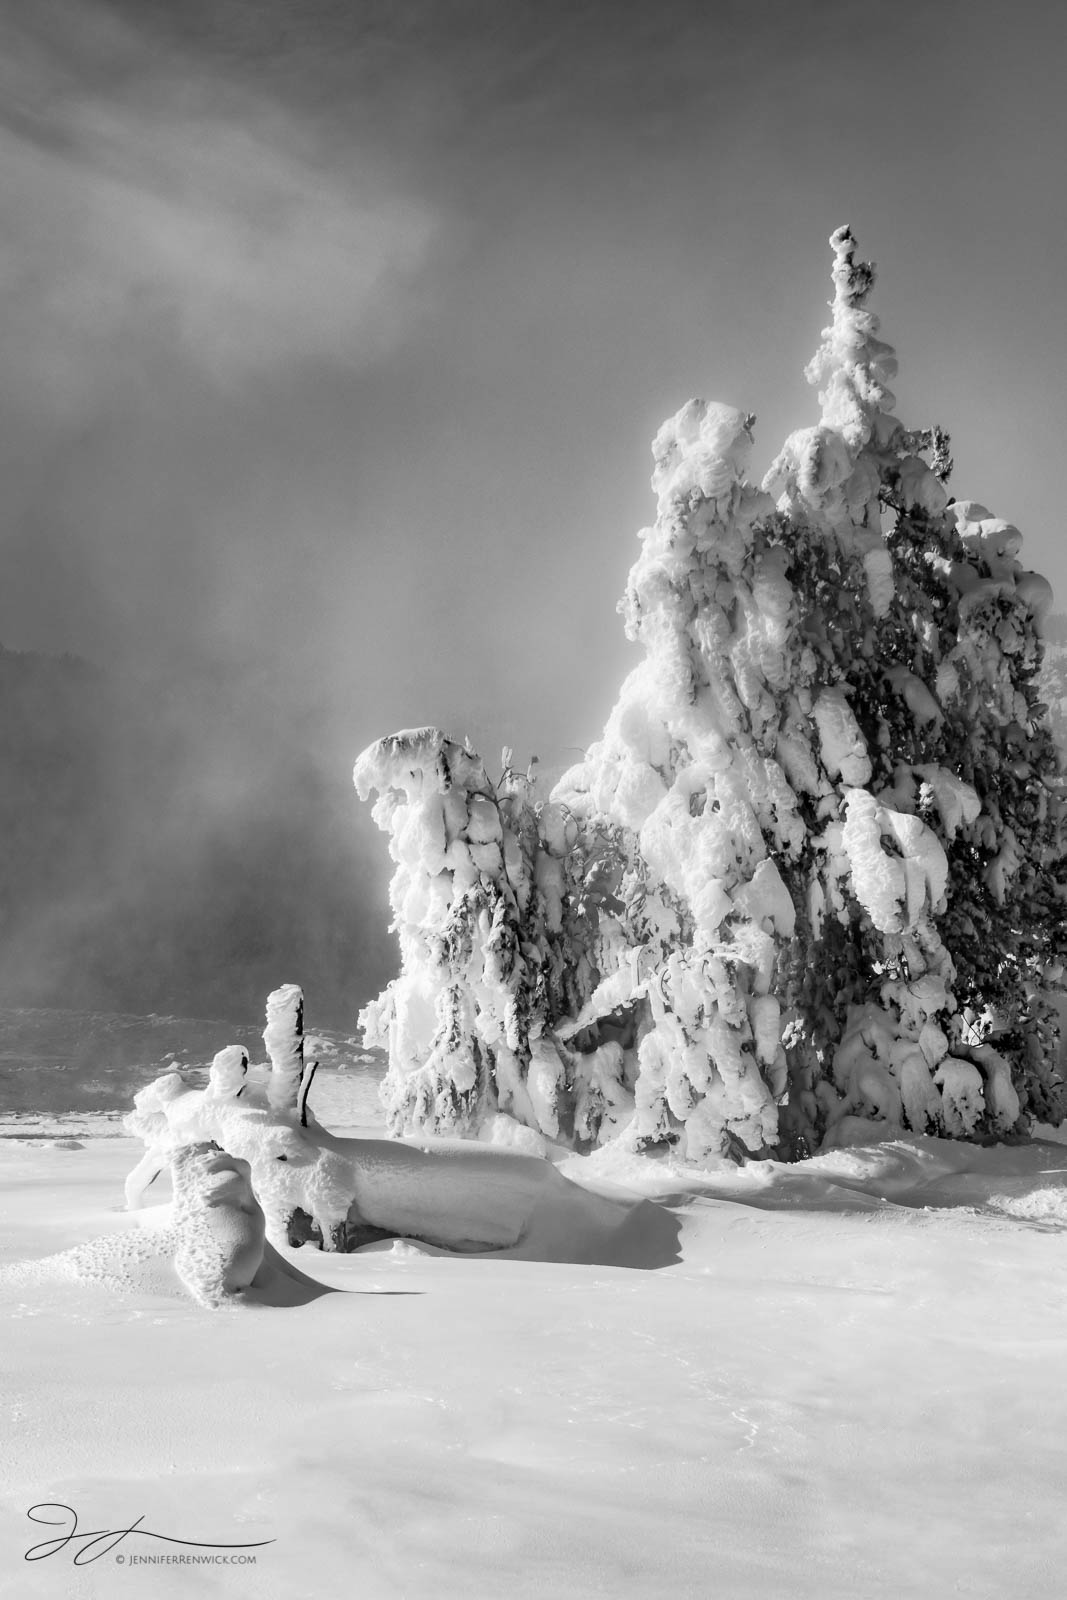 Yellowstone national park, winter, Wyoming, trees, thermal feature, snow, hot spring, Upper Geyser Basin, monochrome, black and white, landscape, steam, rime ice, photo